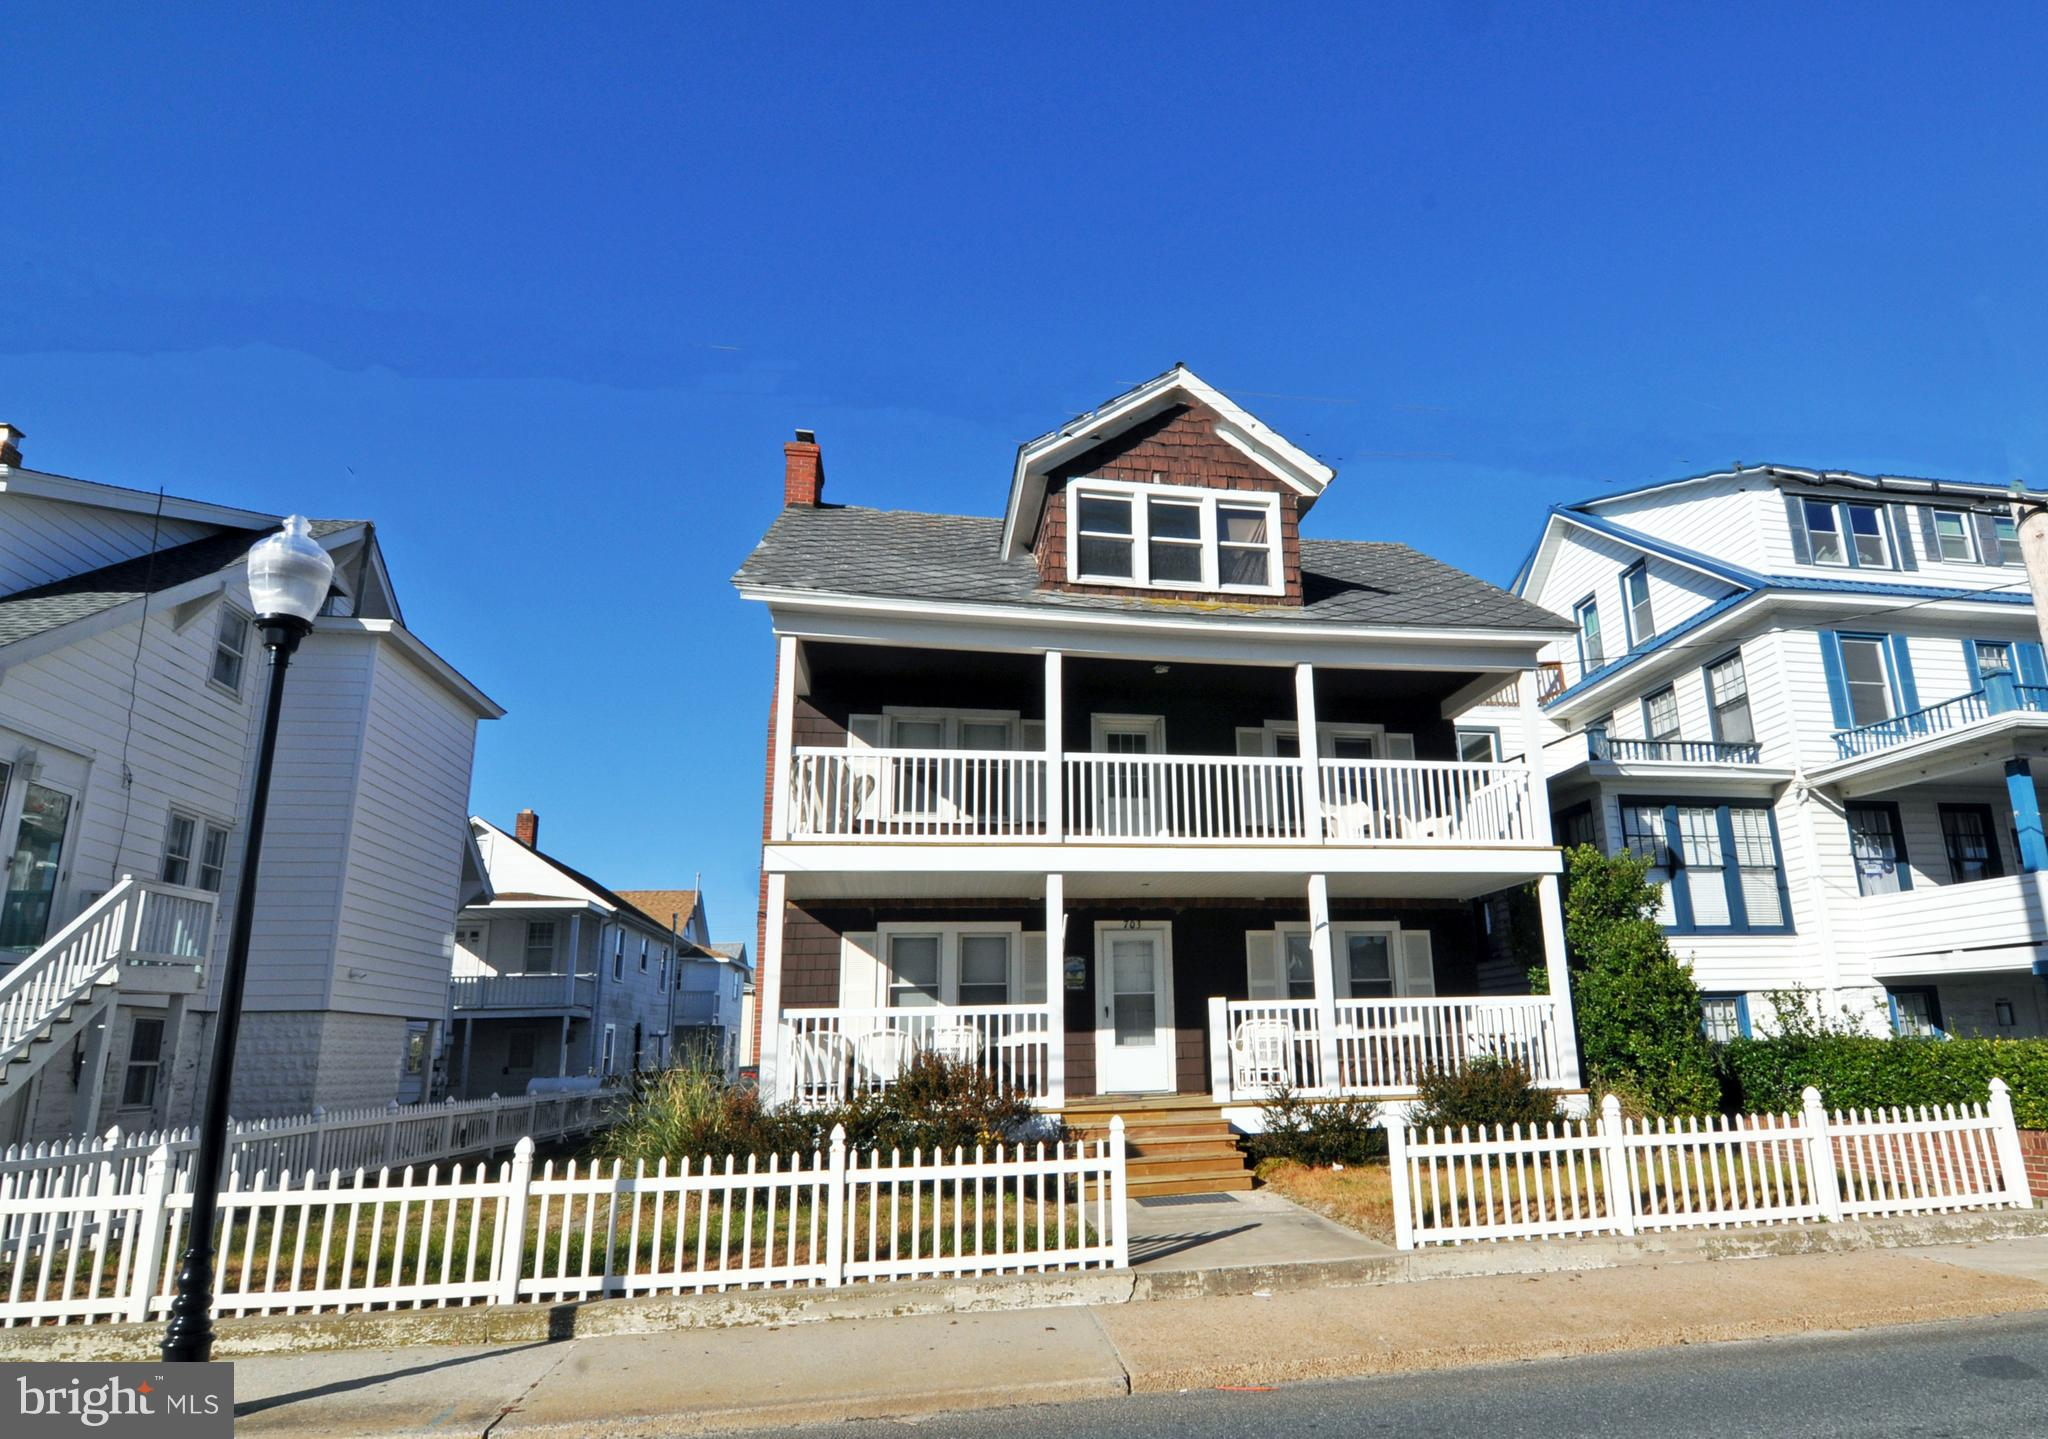 Great opportunity to own an income producing property just 1 block to the Beach & Ocean City Boardwa